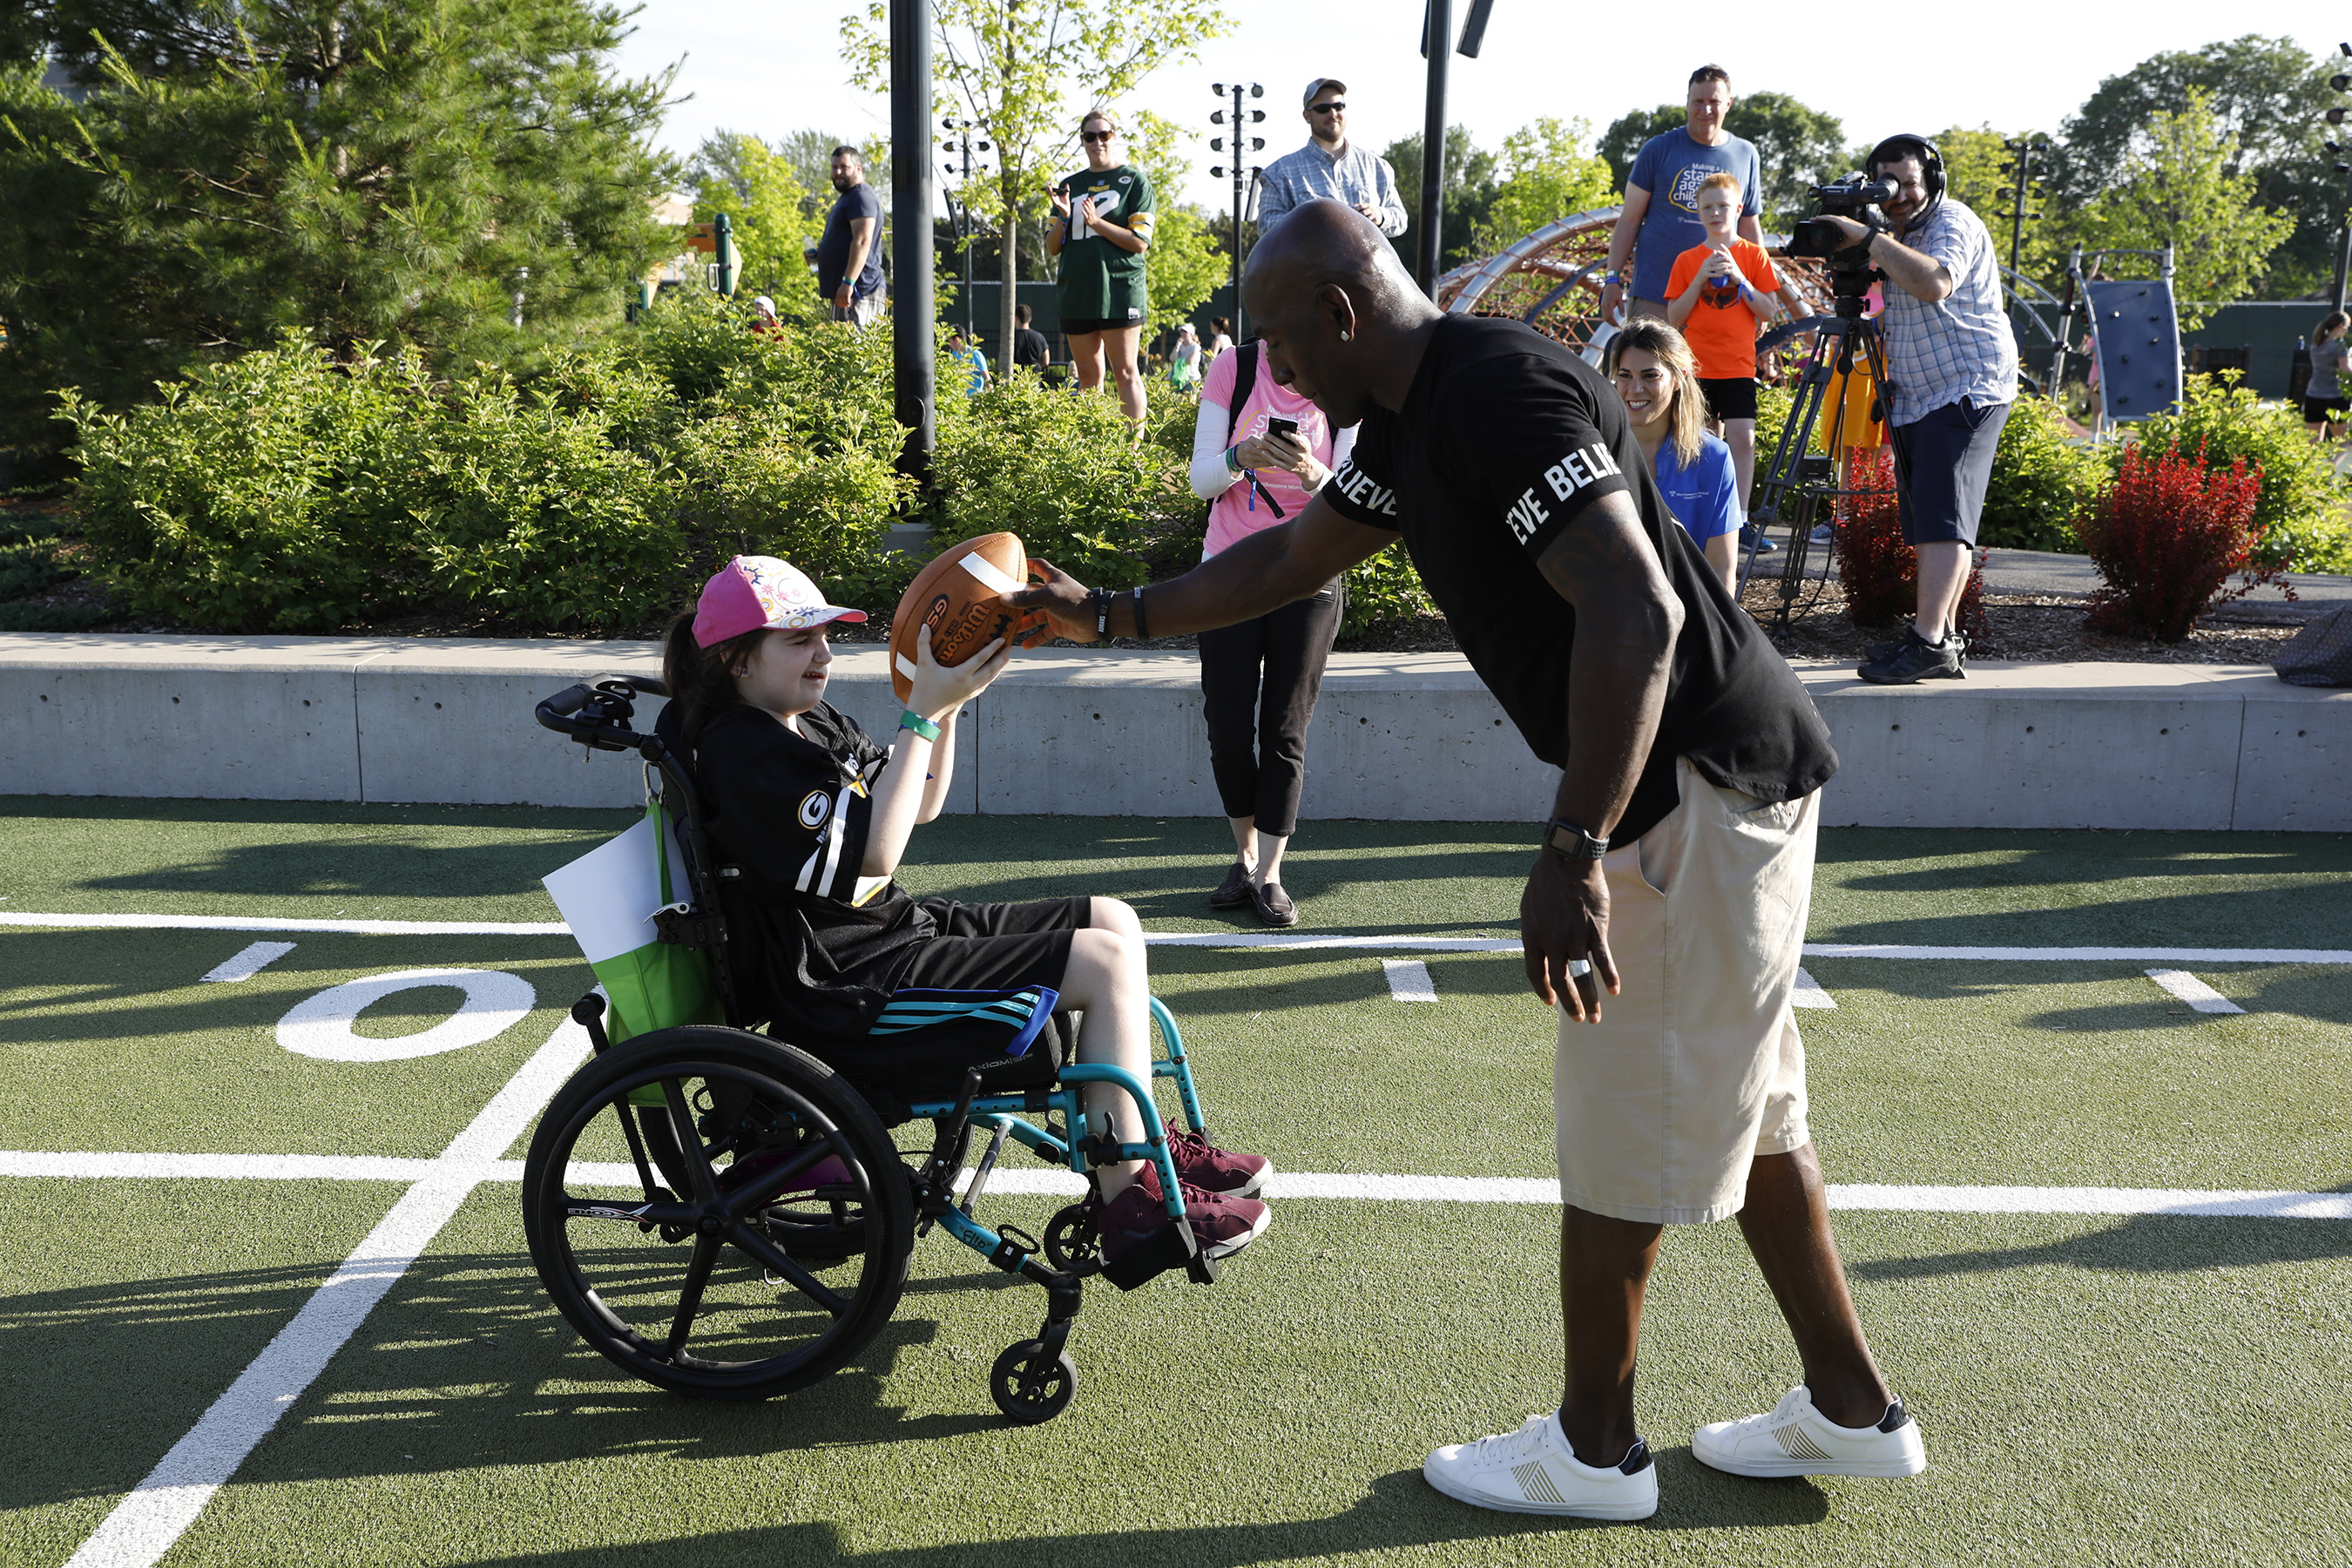 NFL legend Donald Driver interacts with children at Northwestern Mutual's Ultimate Campout Fighting Childhood Cancer at the Green Bay Packer's Titletown development.